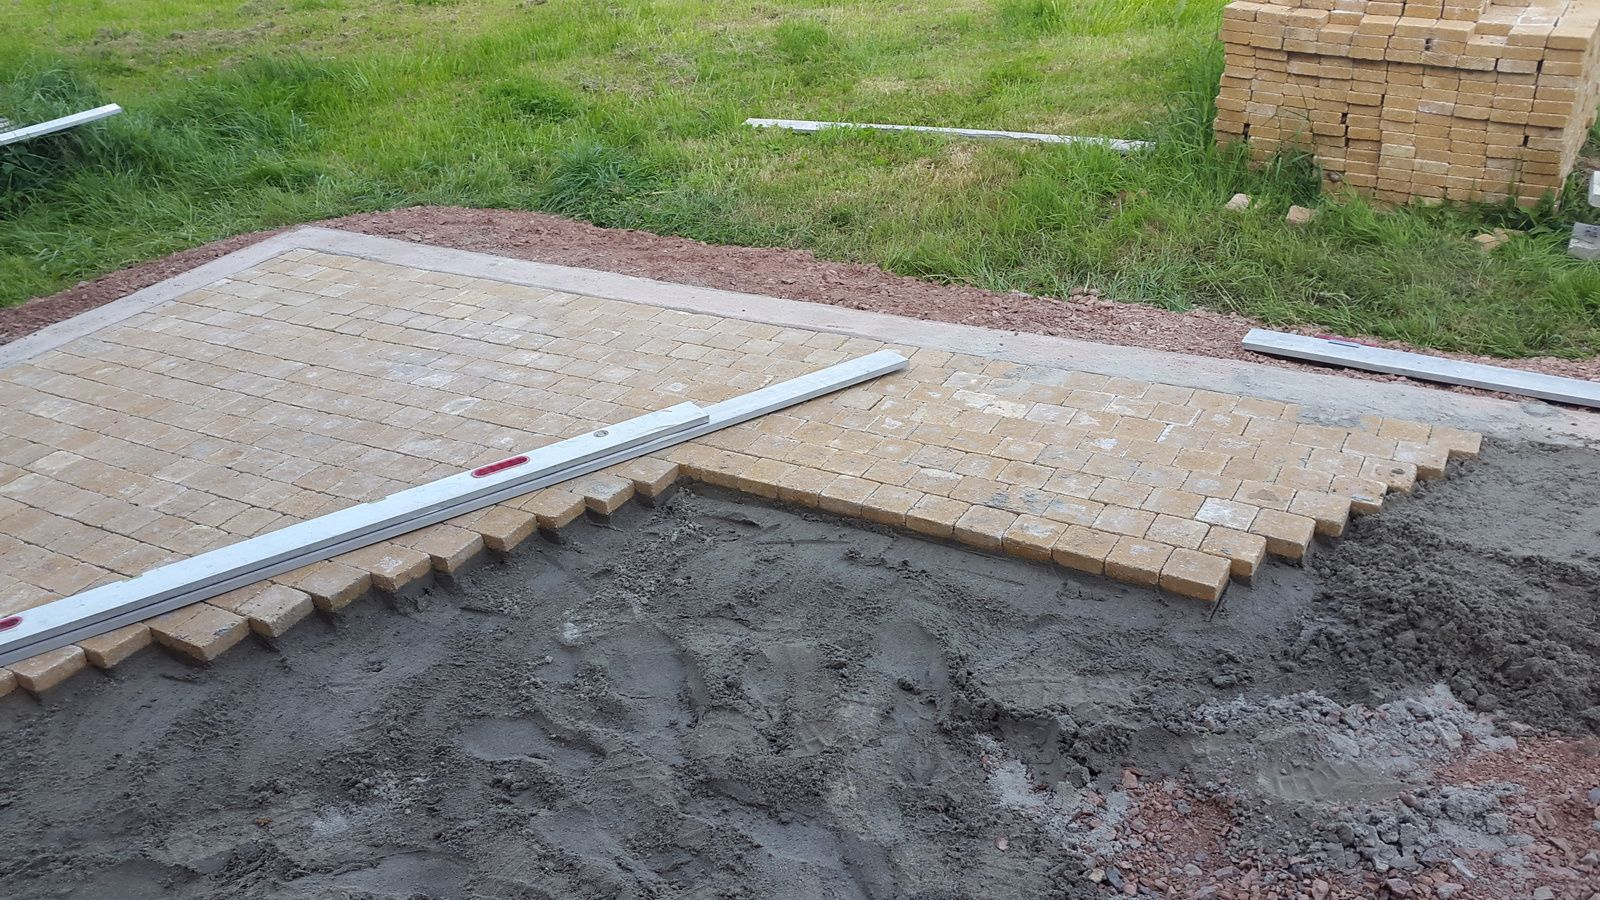 Creation terrasse en pav 14 14 hlmultiservices - Couler une dalle de terrasse ...